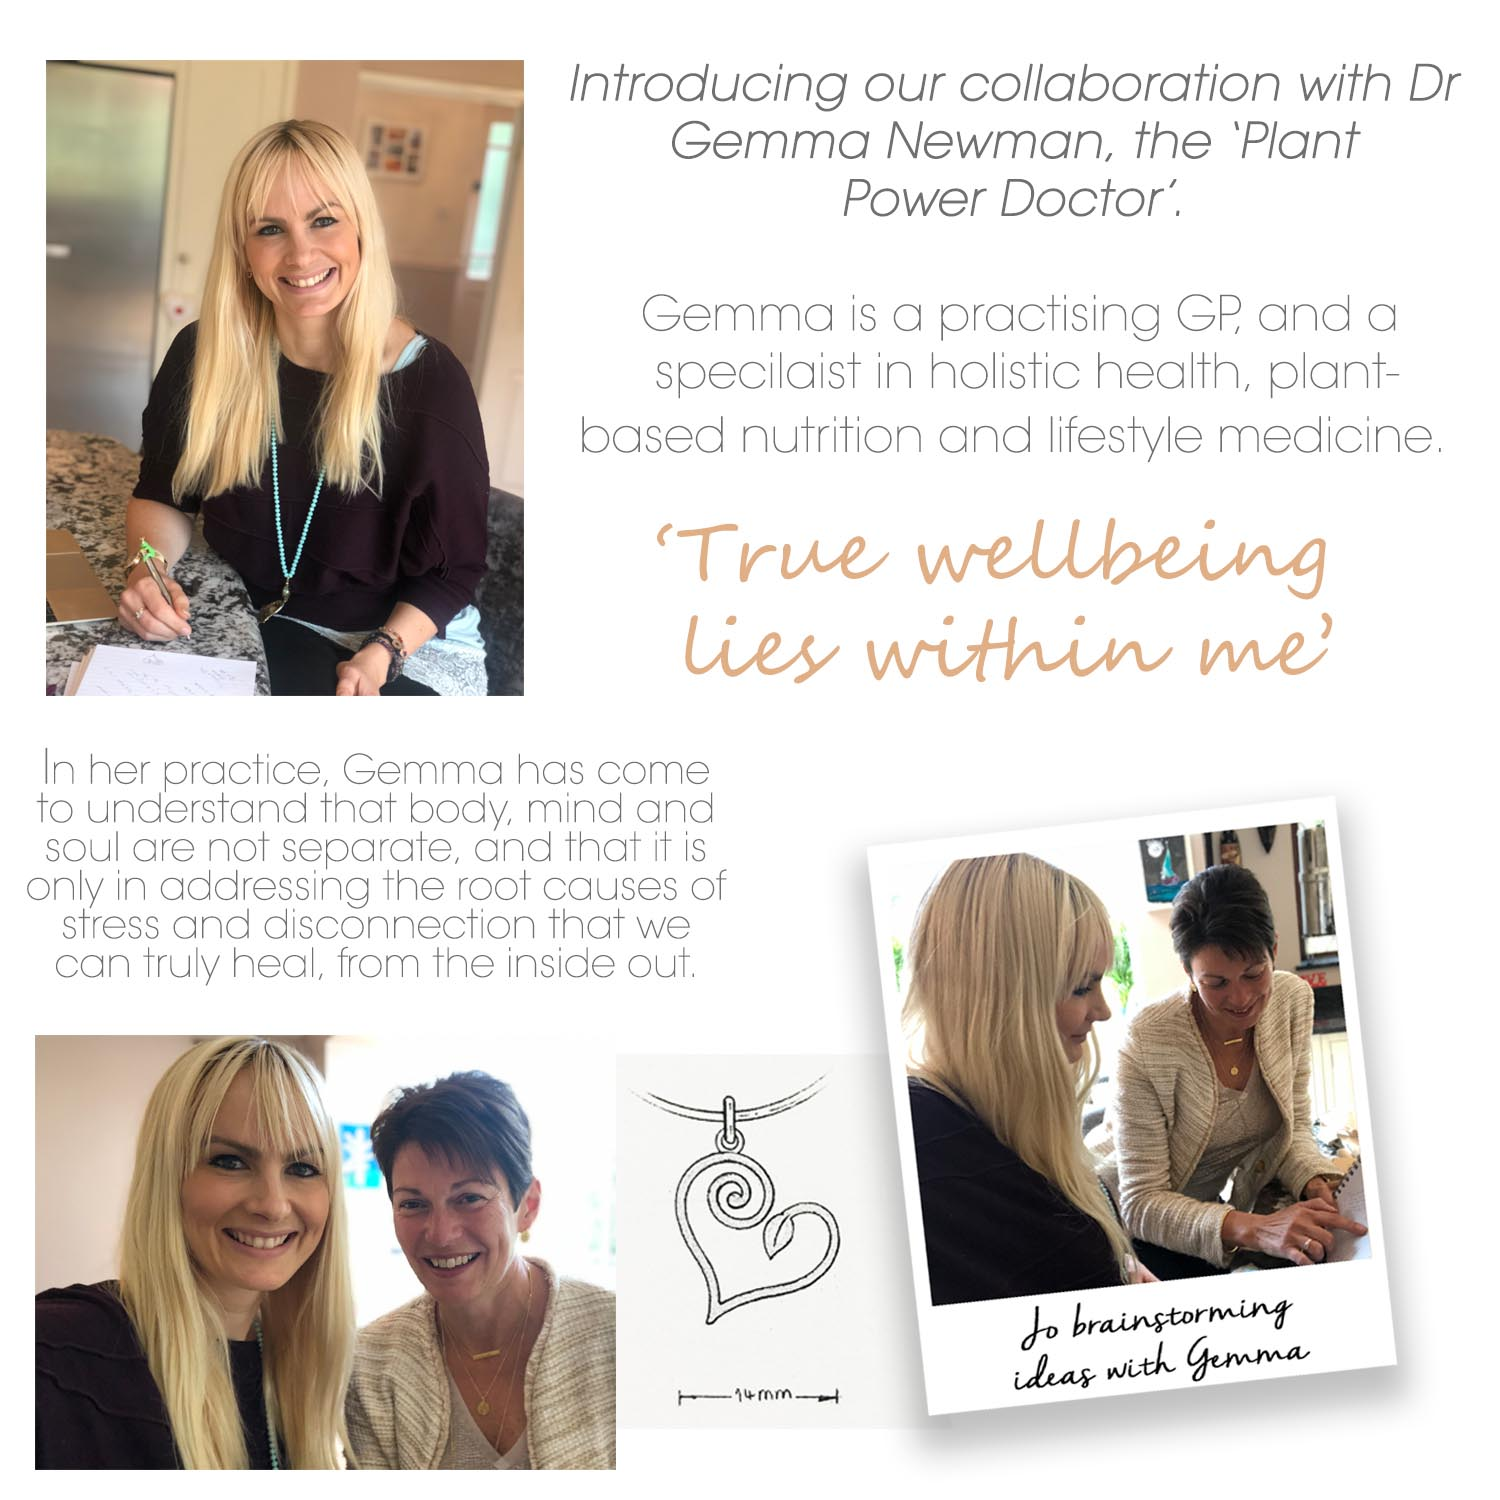 gemma newman collaboration with Mantra Jewellery